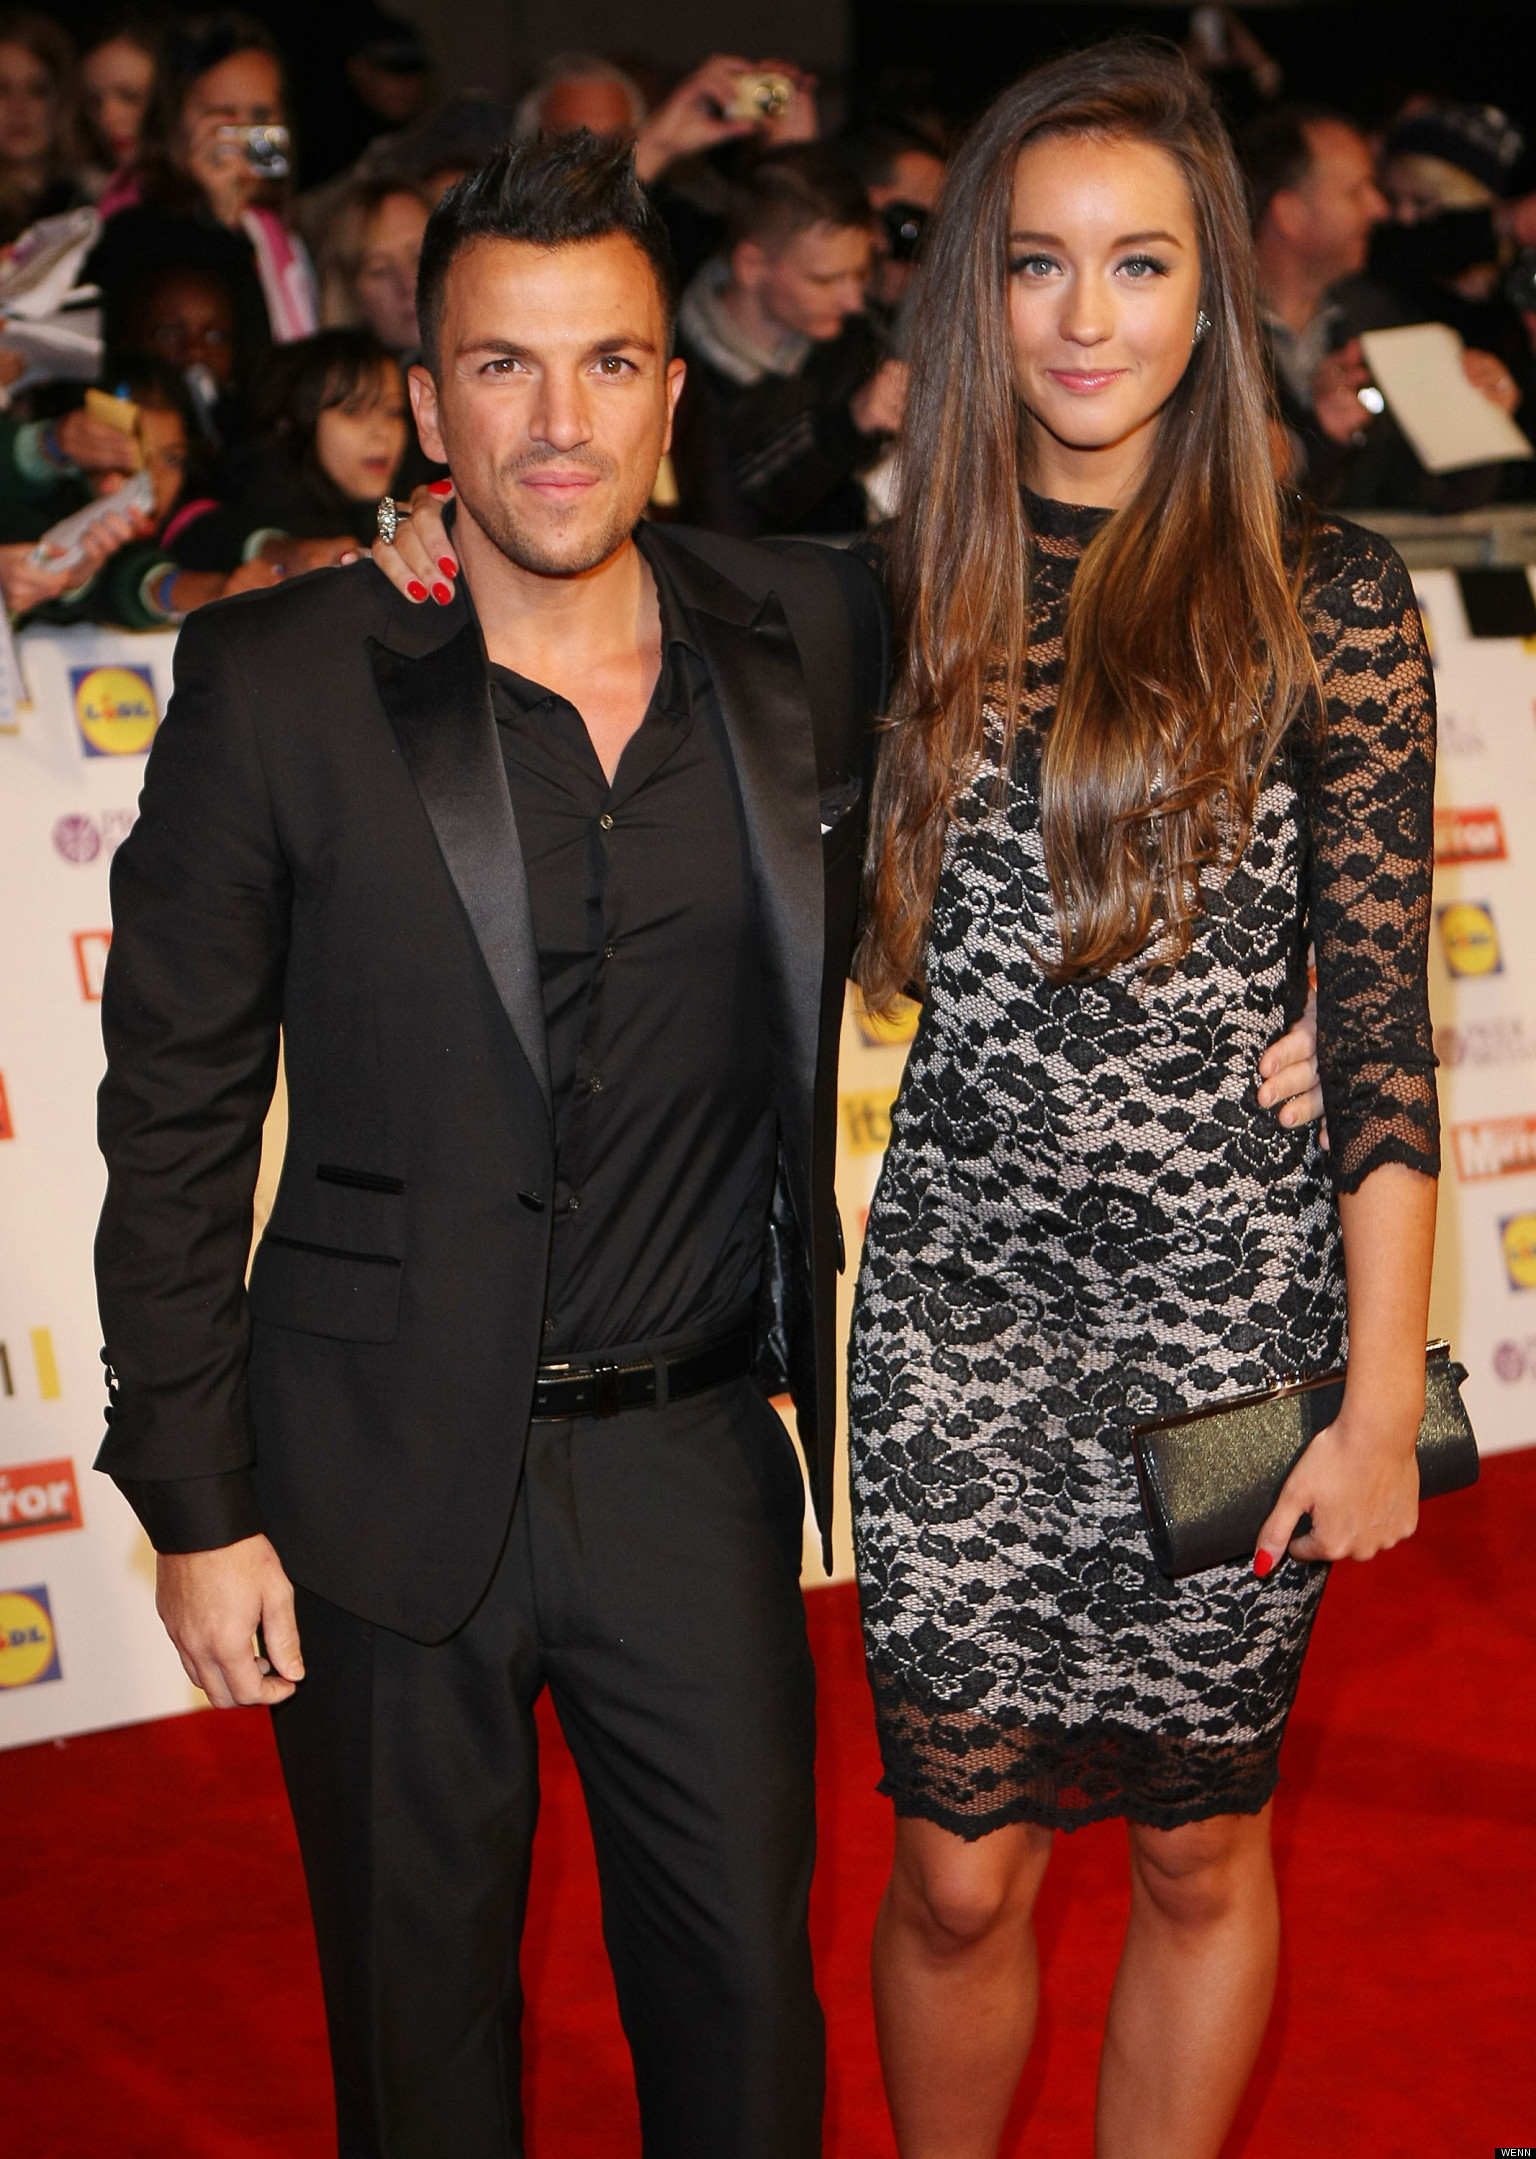 Peter Andre Wants Kids With New Girlfriend Emily